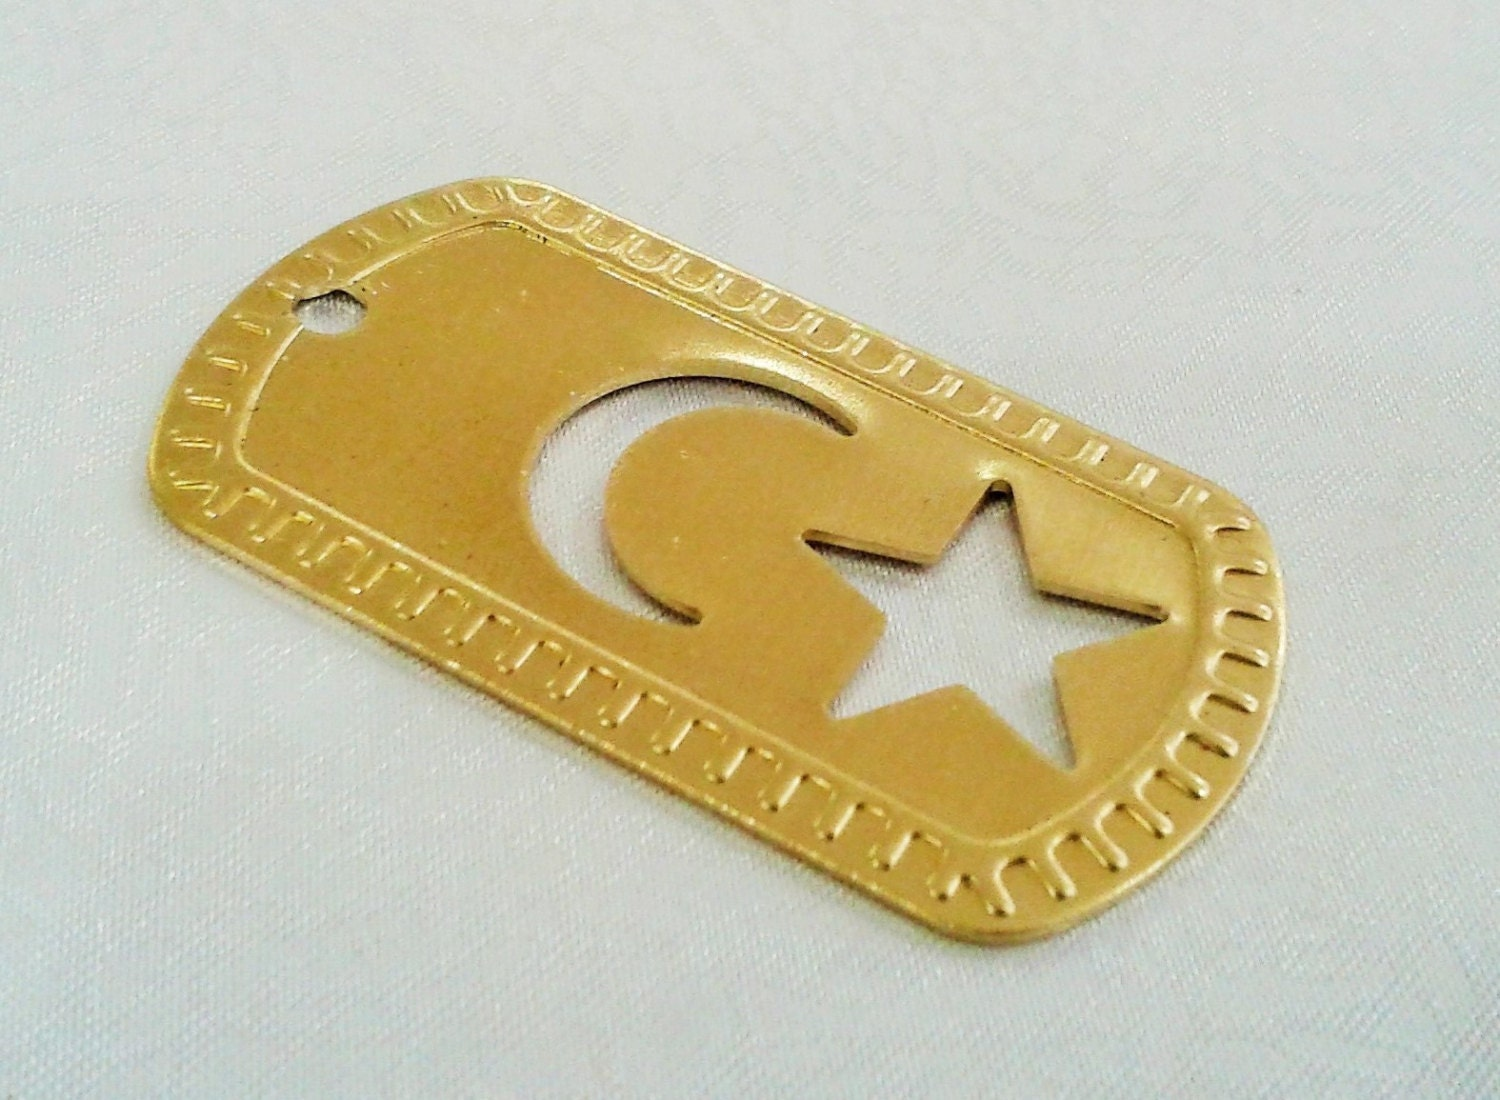 4 pcs raw brass 28 x 51 mm moon star tag 4 mm head hole for Just my style personalized jewelry studio